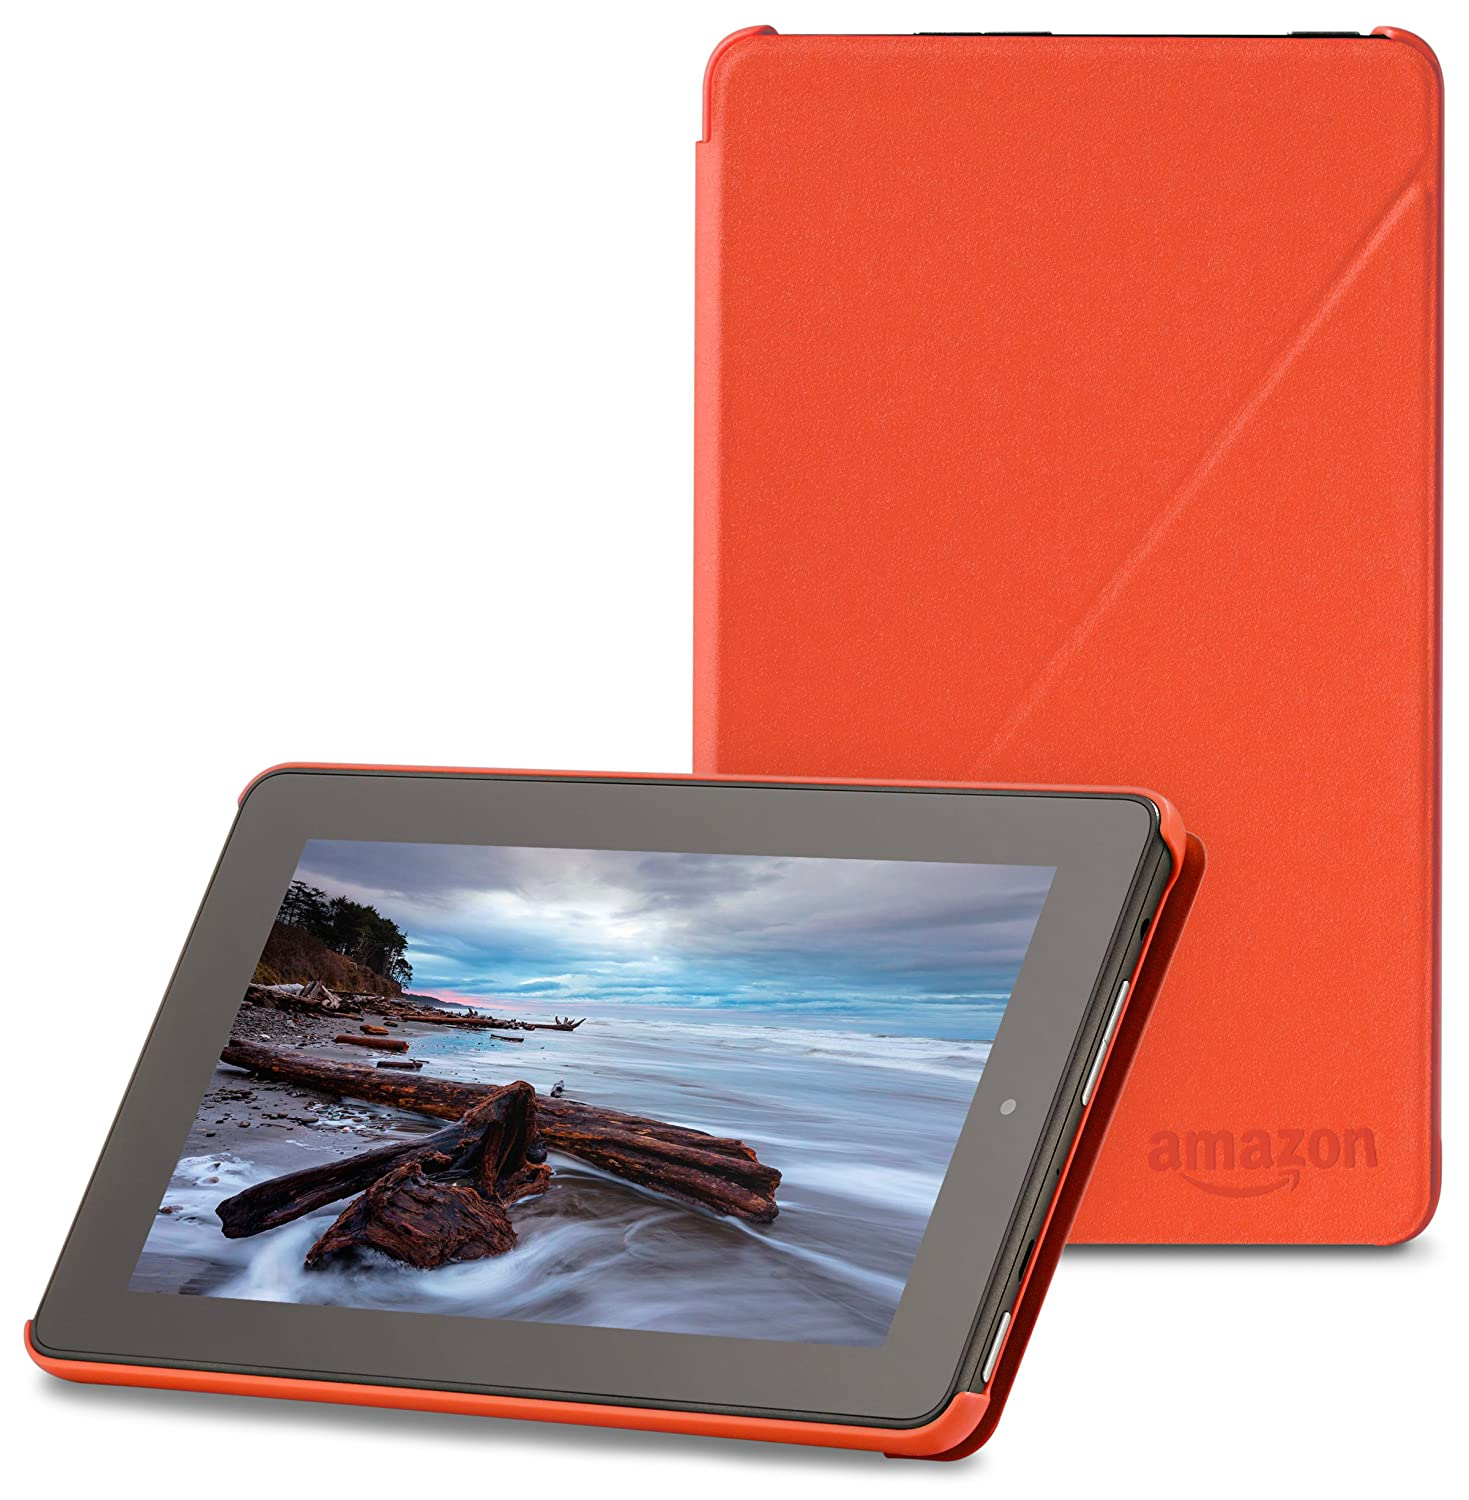 "Amazon Fire 7"" (2015 release) Case - Slim Lightweight Standing Custom Fit Cover for Amazon Fire 7 Inch Tablet, Tangerine"